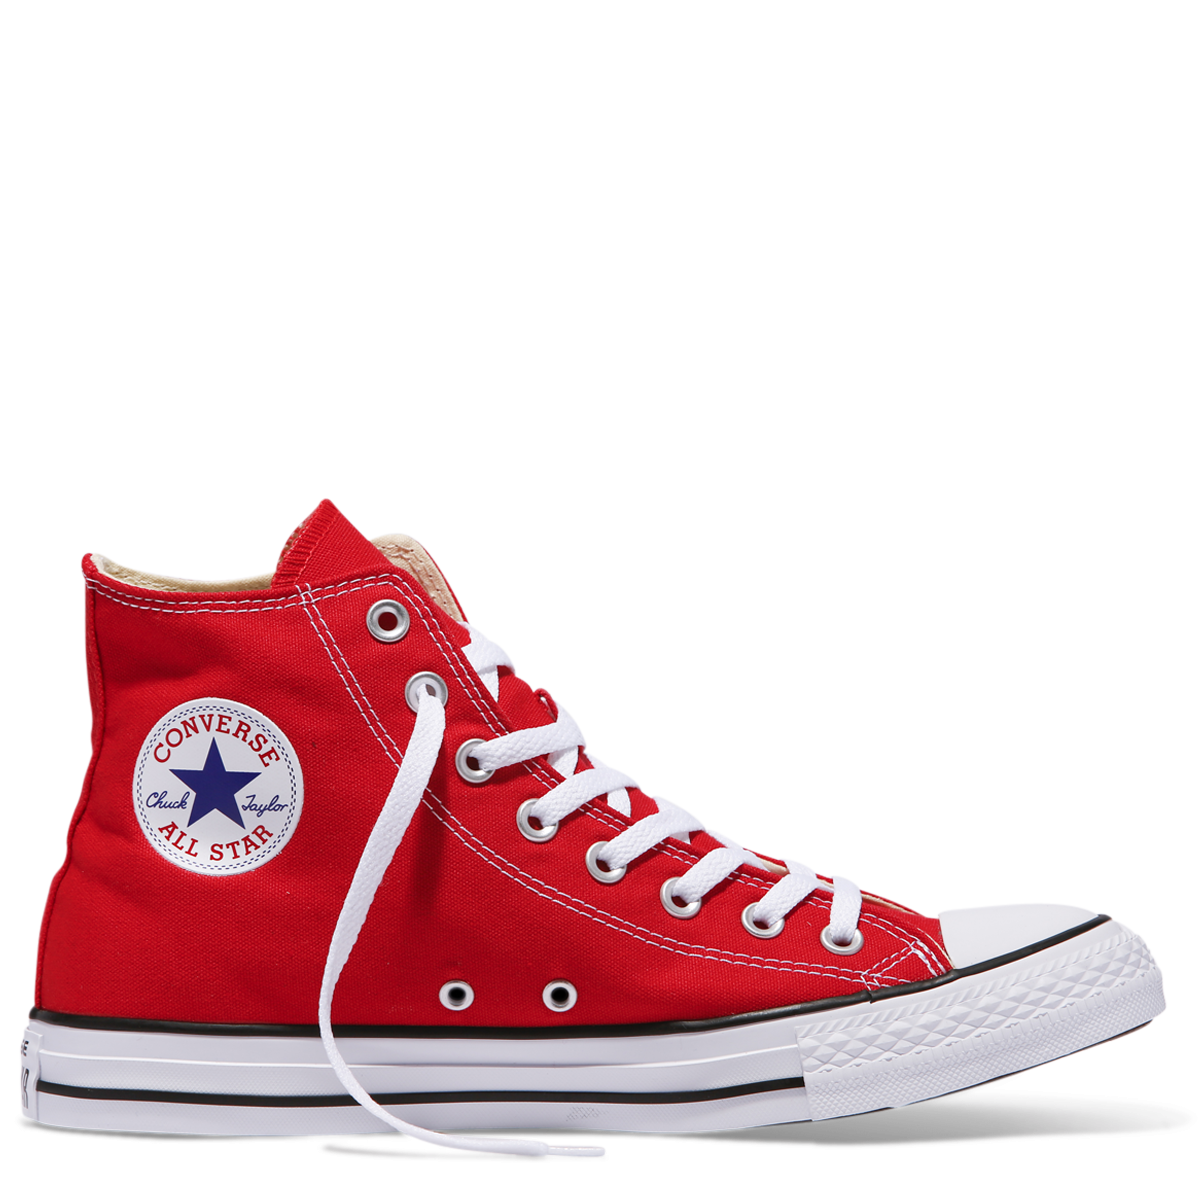 10c13d5307a Buy Chuck Taylor All Star Classic Colour High Top Red online at Converse.  Free shipping on orders over  75.